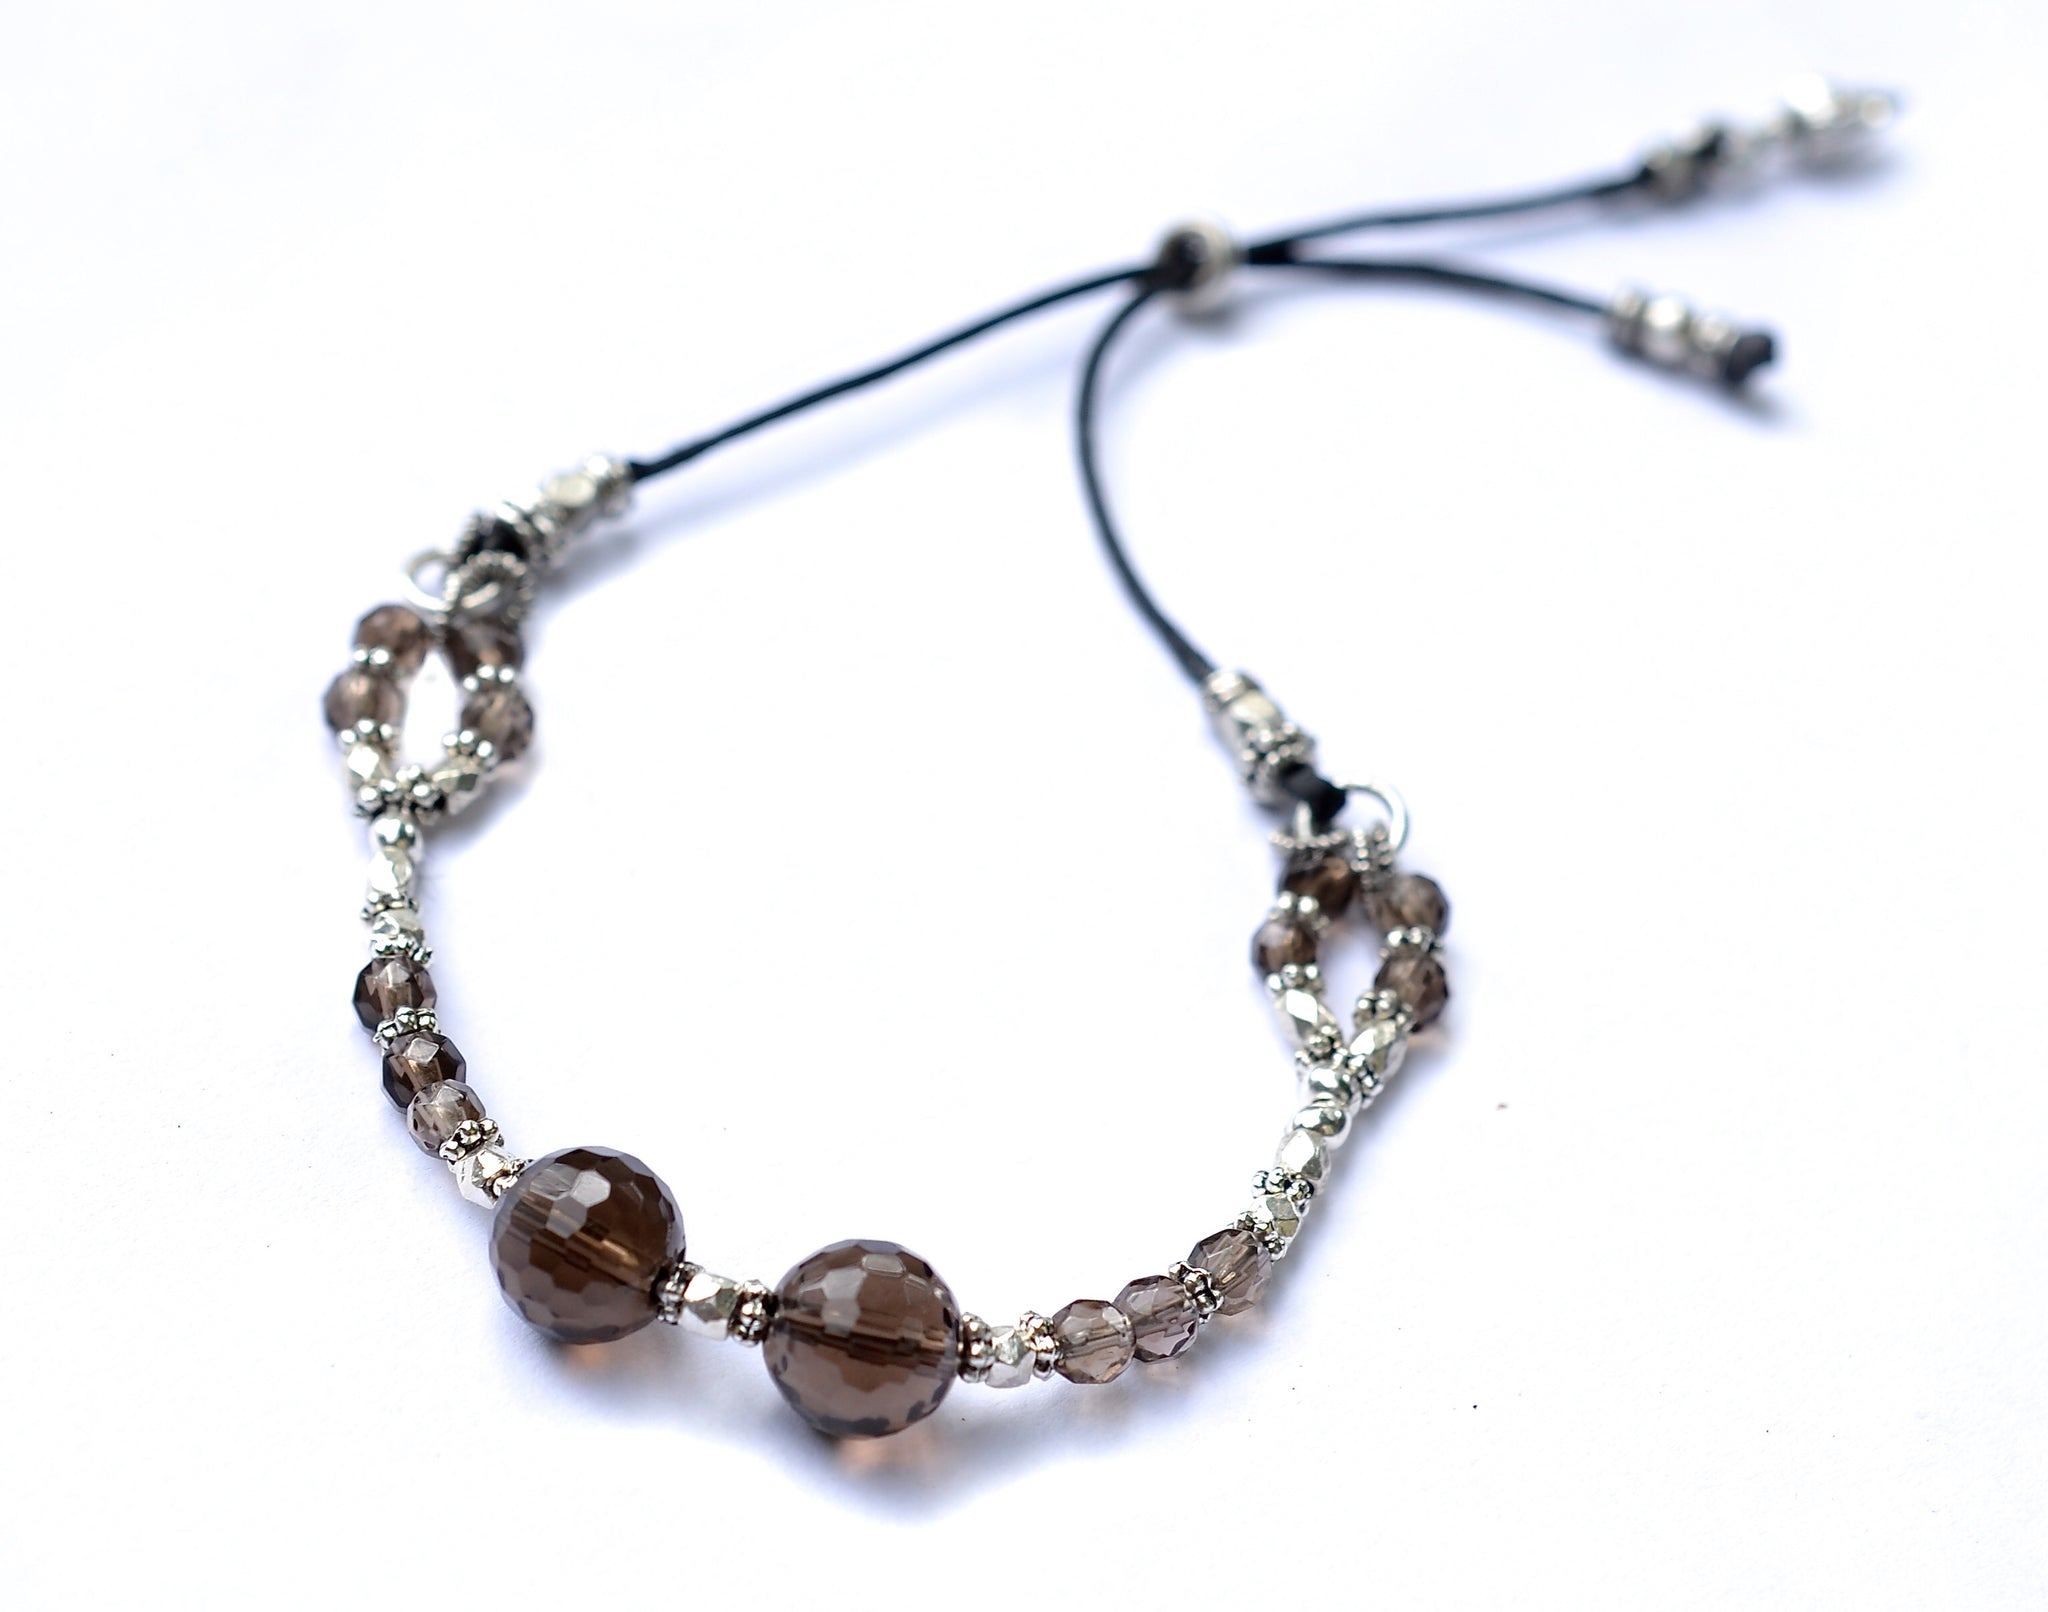 Smokey Quartz & Silver Adjustable Bracelet